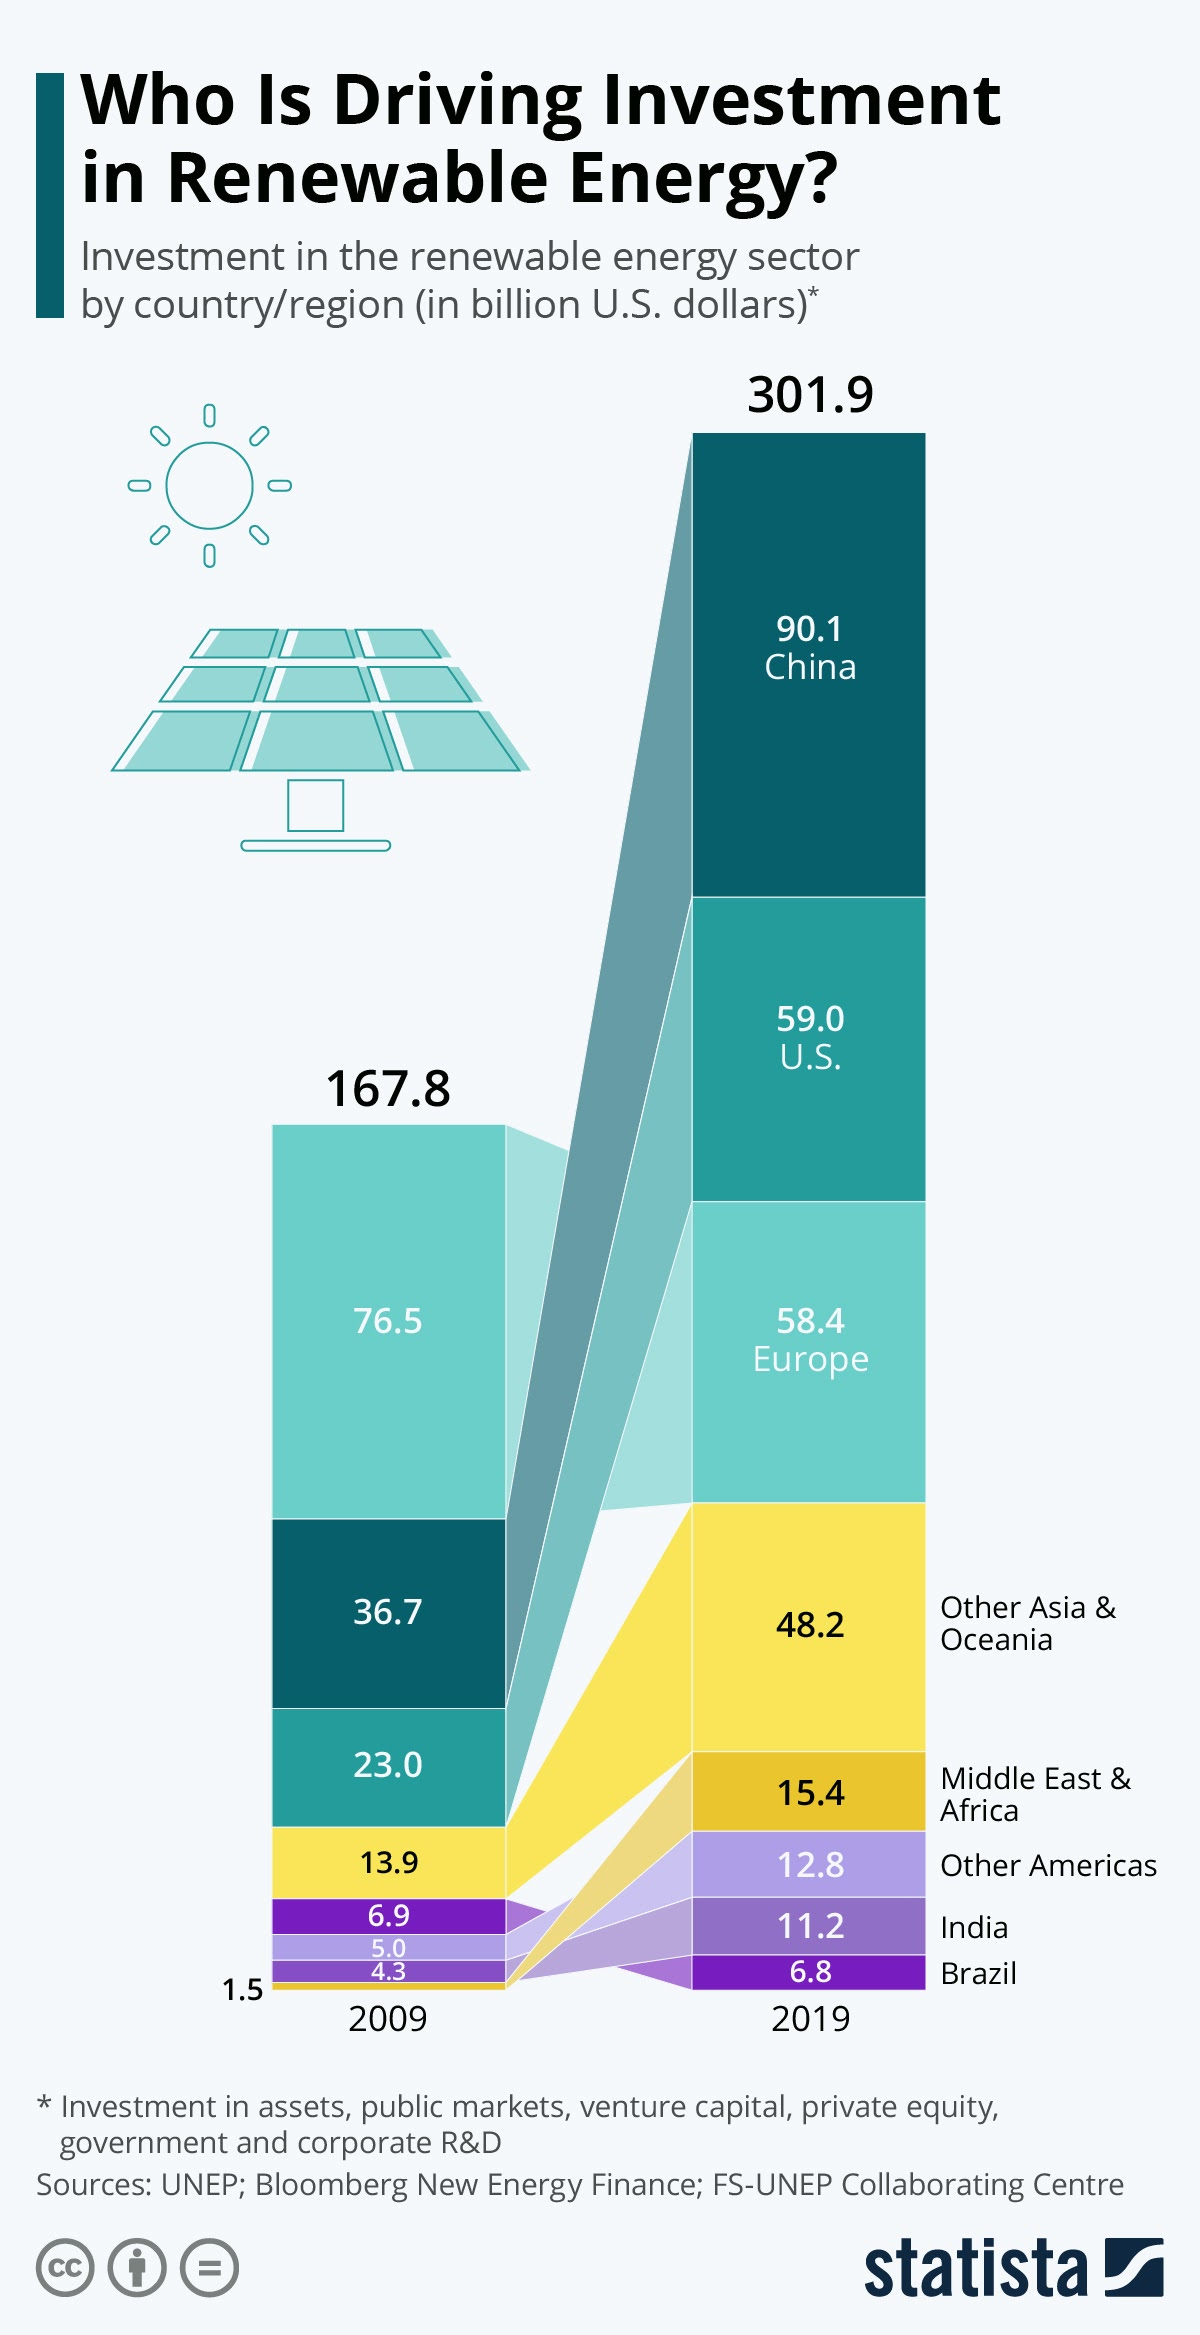 Who Is Driving Investment in Renewable Energy? #infographic